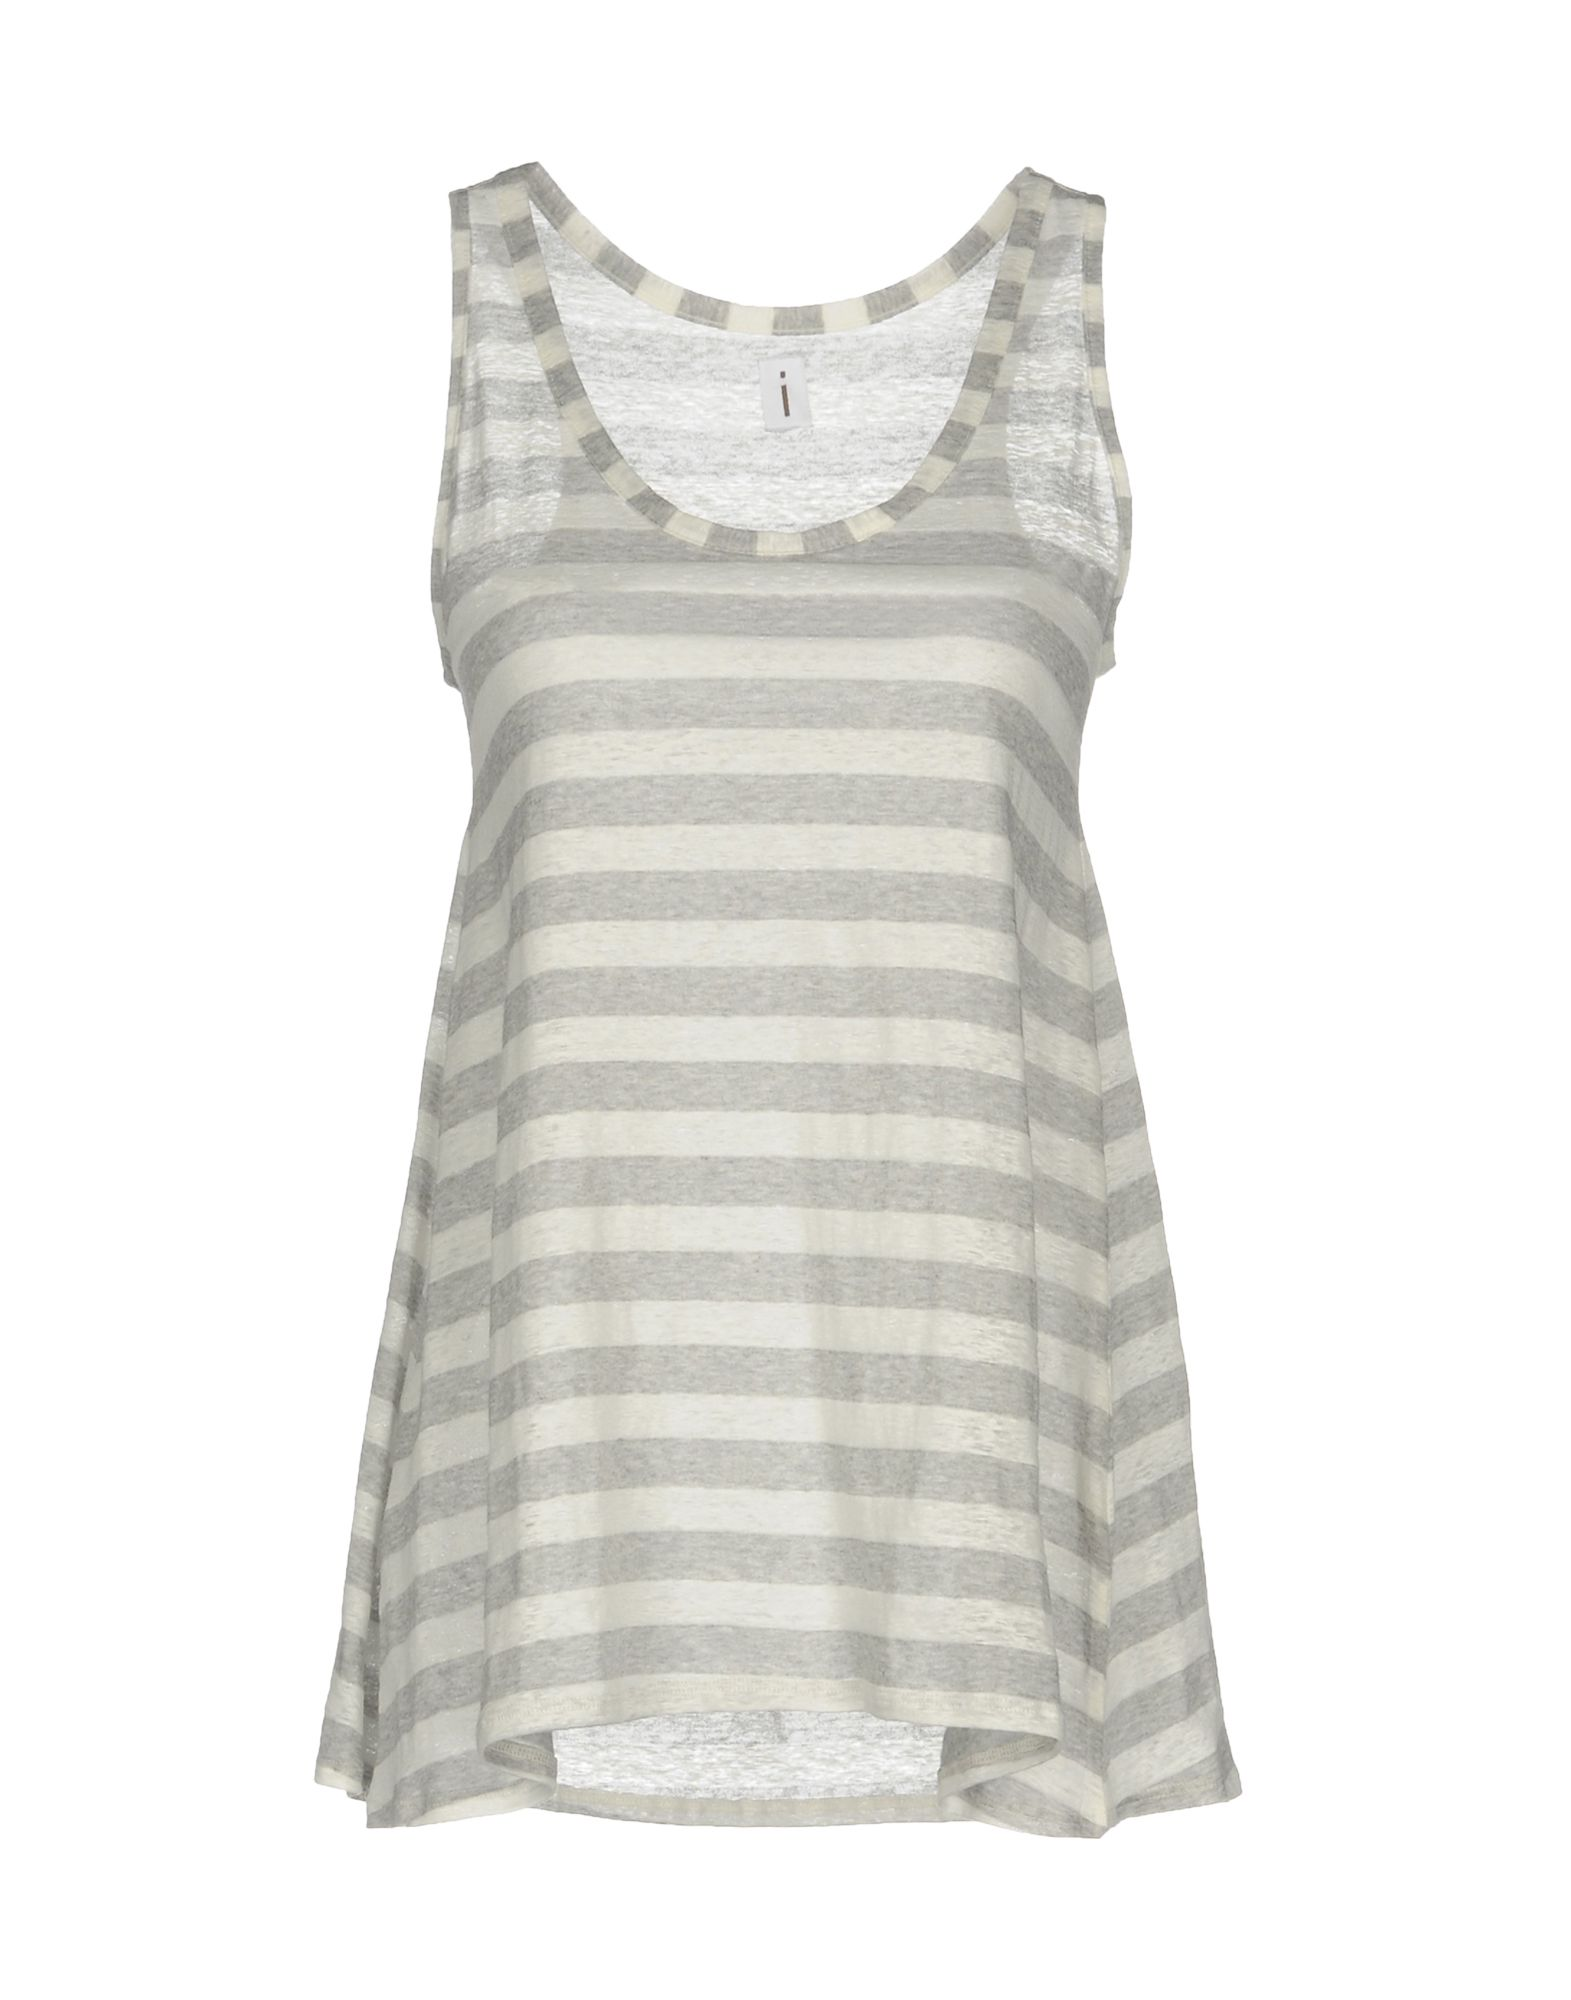 ISABELLA CLEMENTINI Tank tops